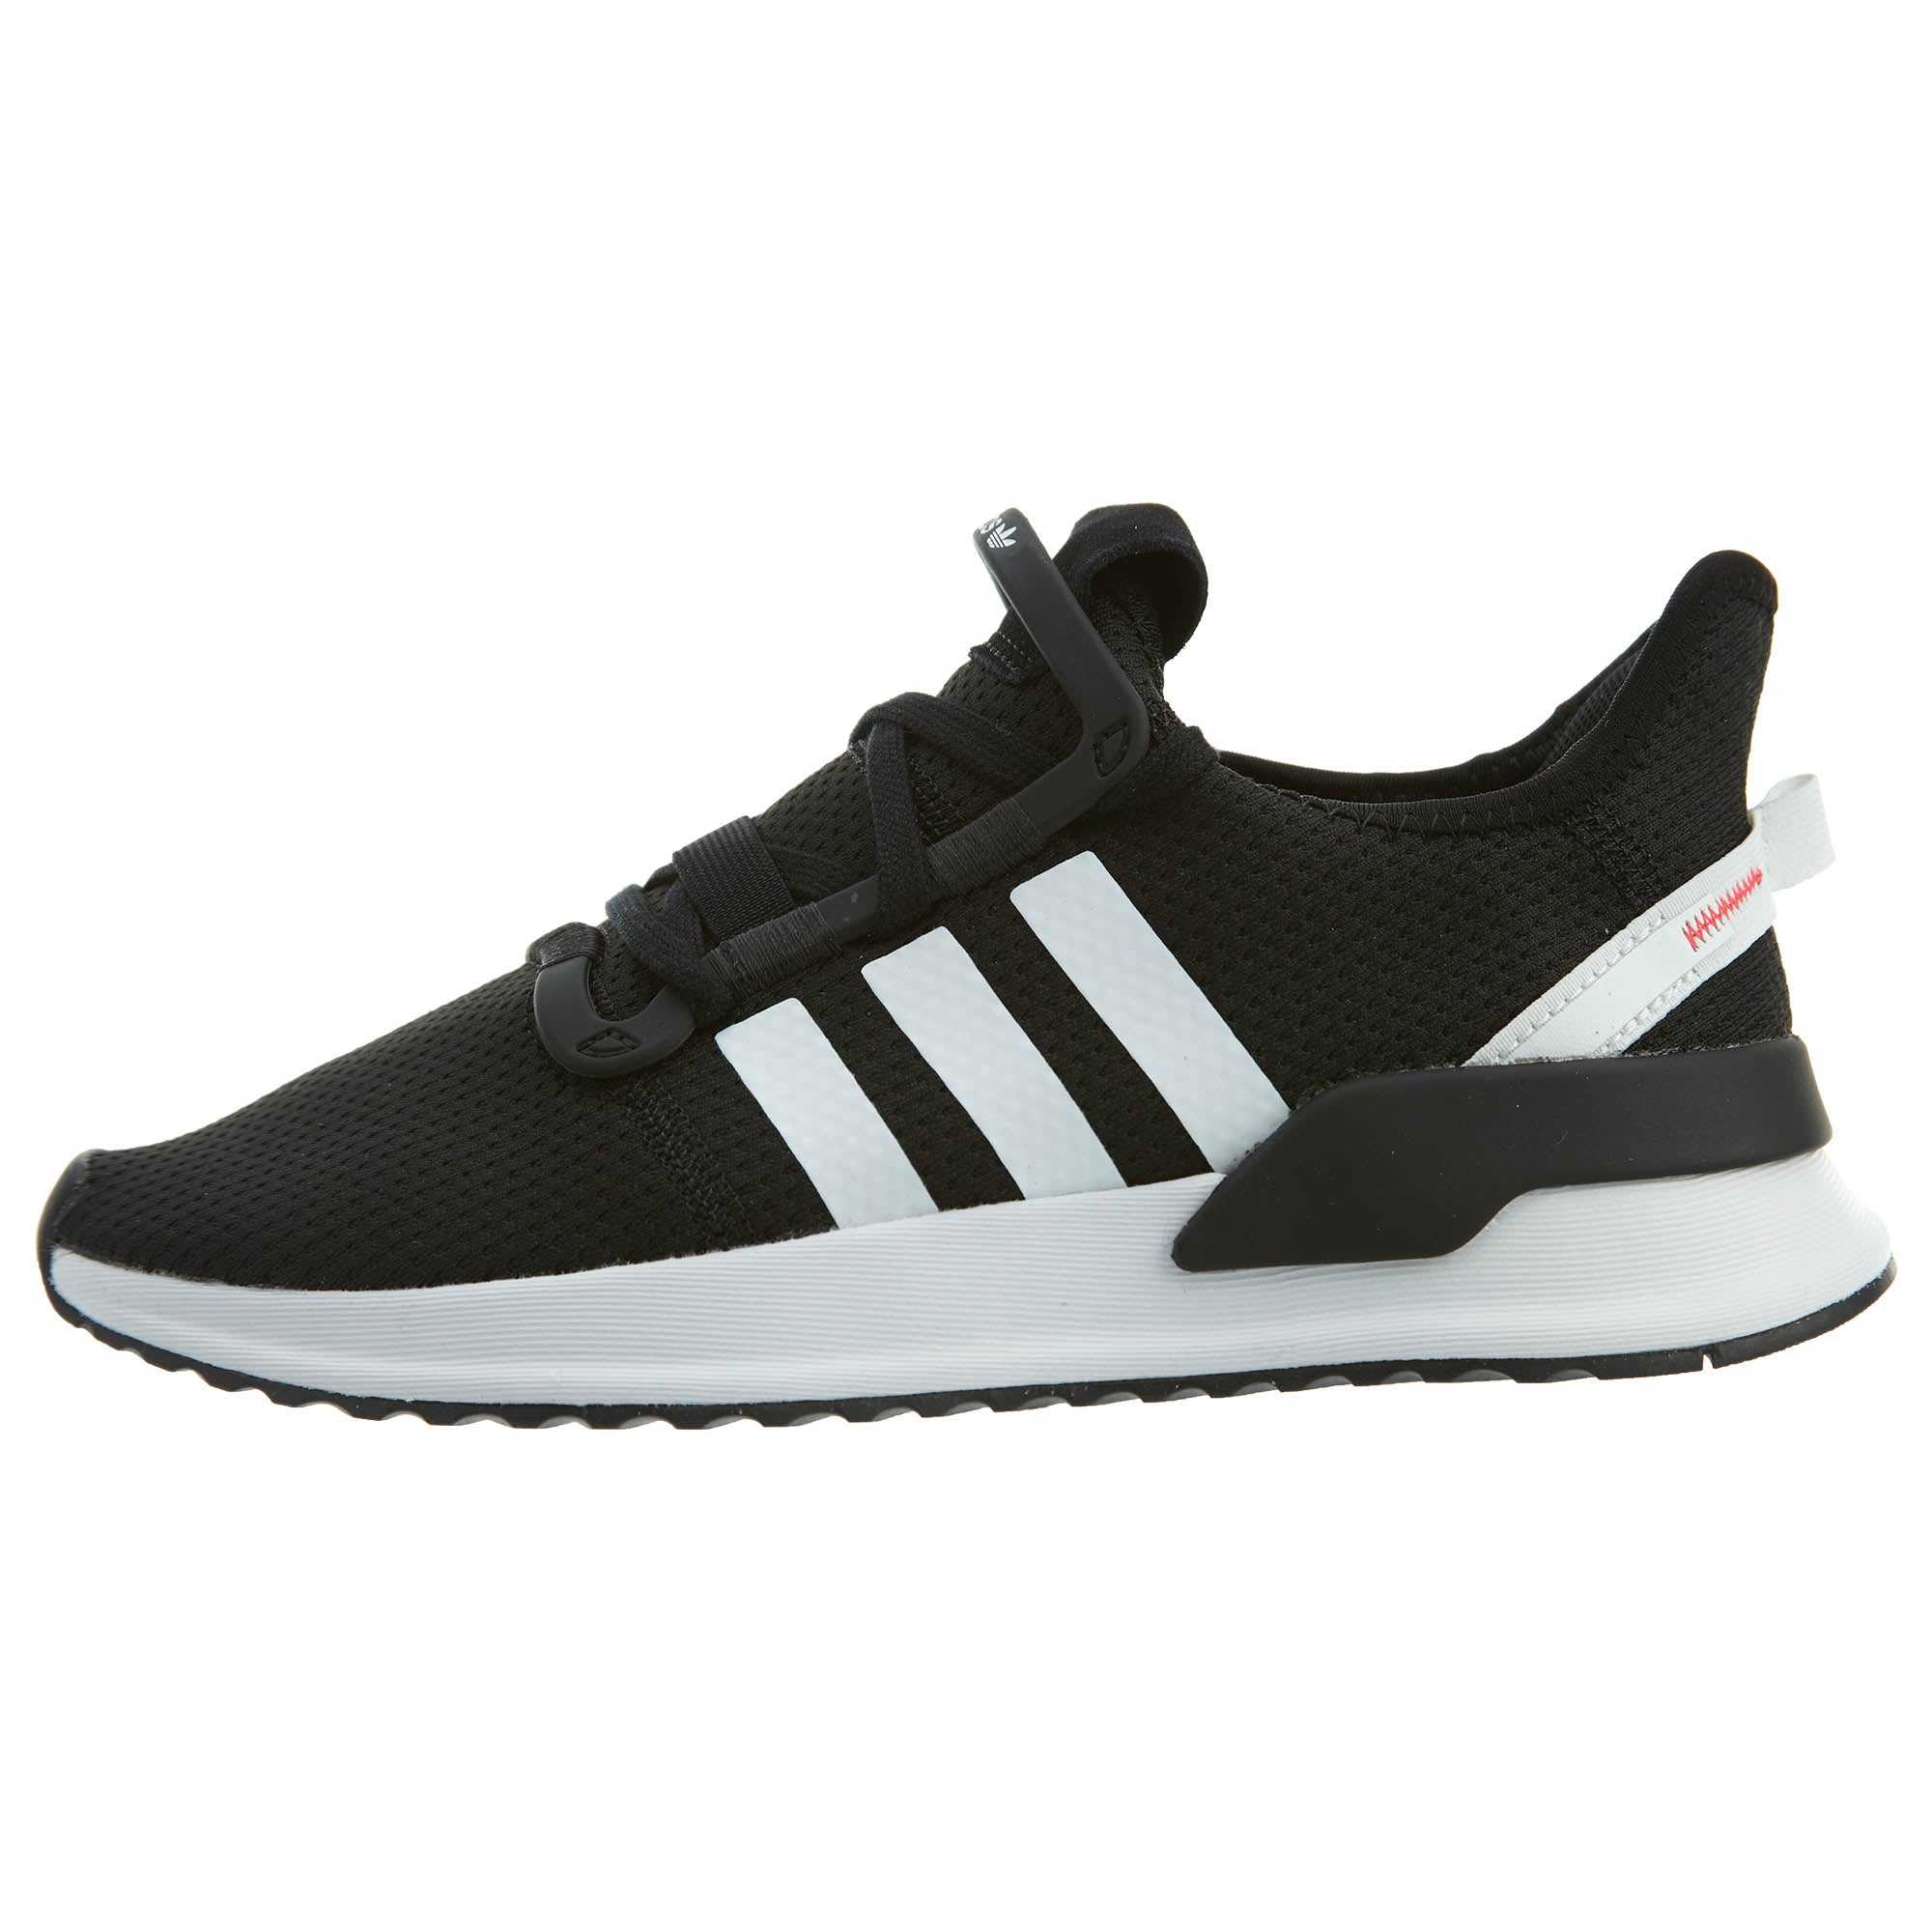 92dcfeca15c Adidas U Path Run Big Kids G28108-Blk – Sneaker Experts